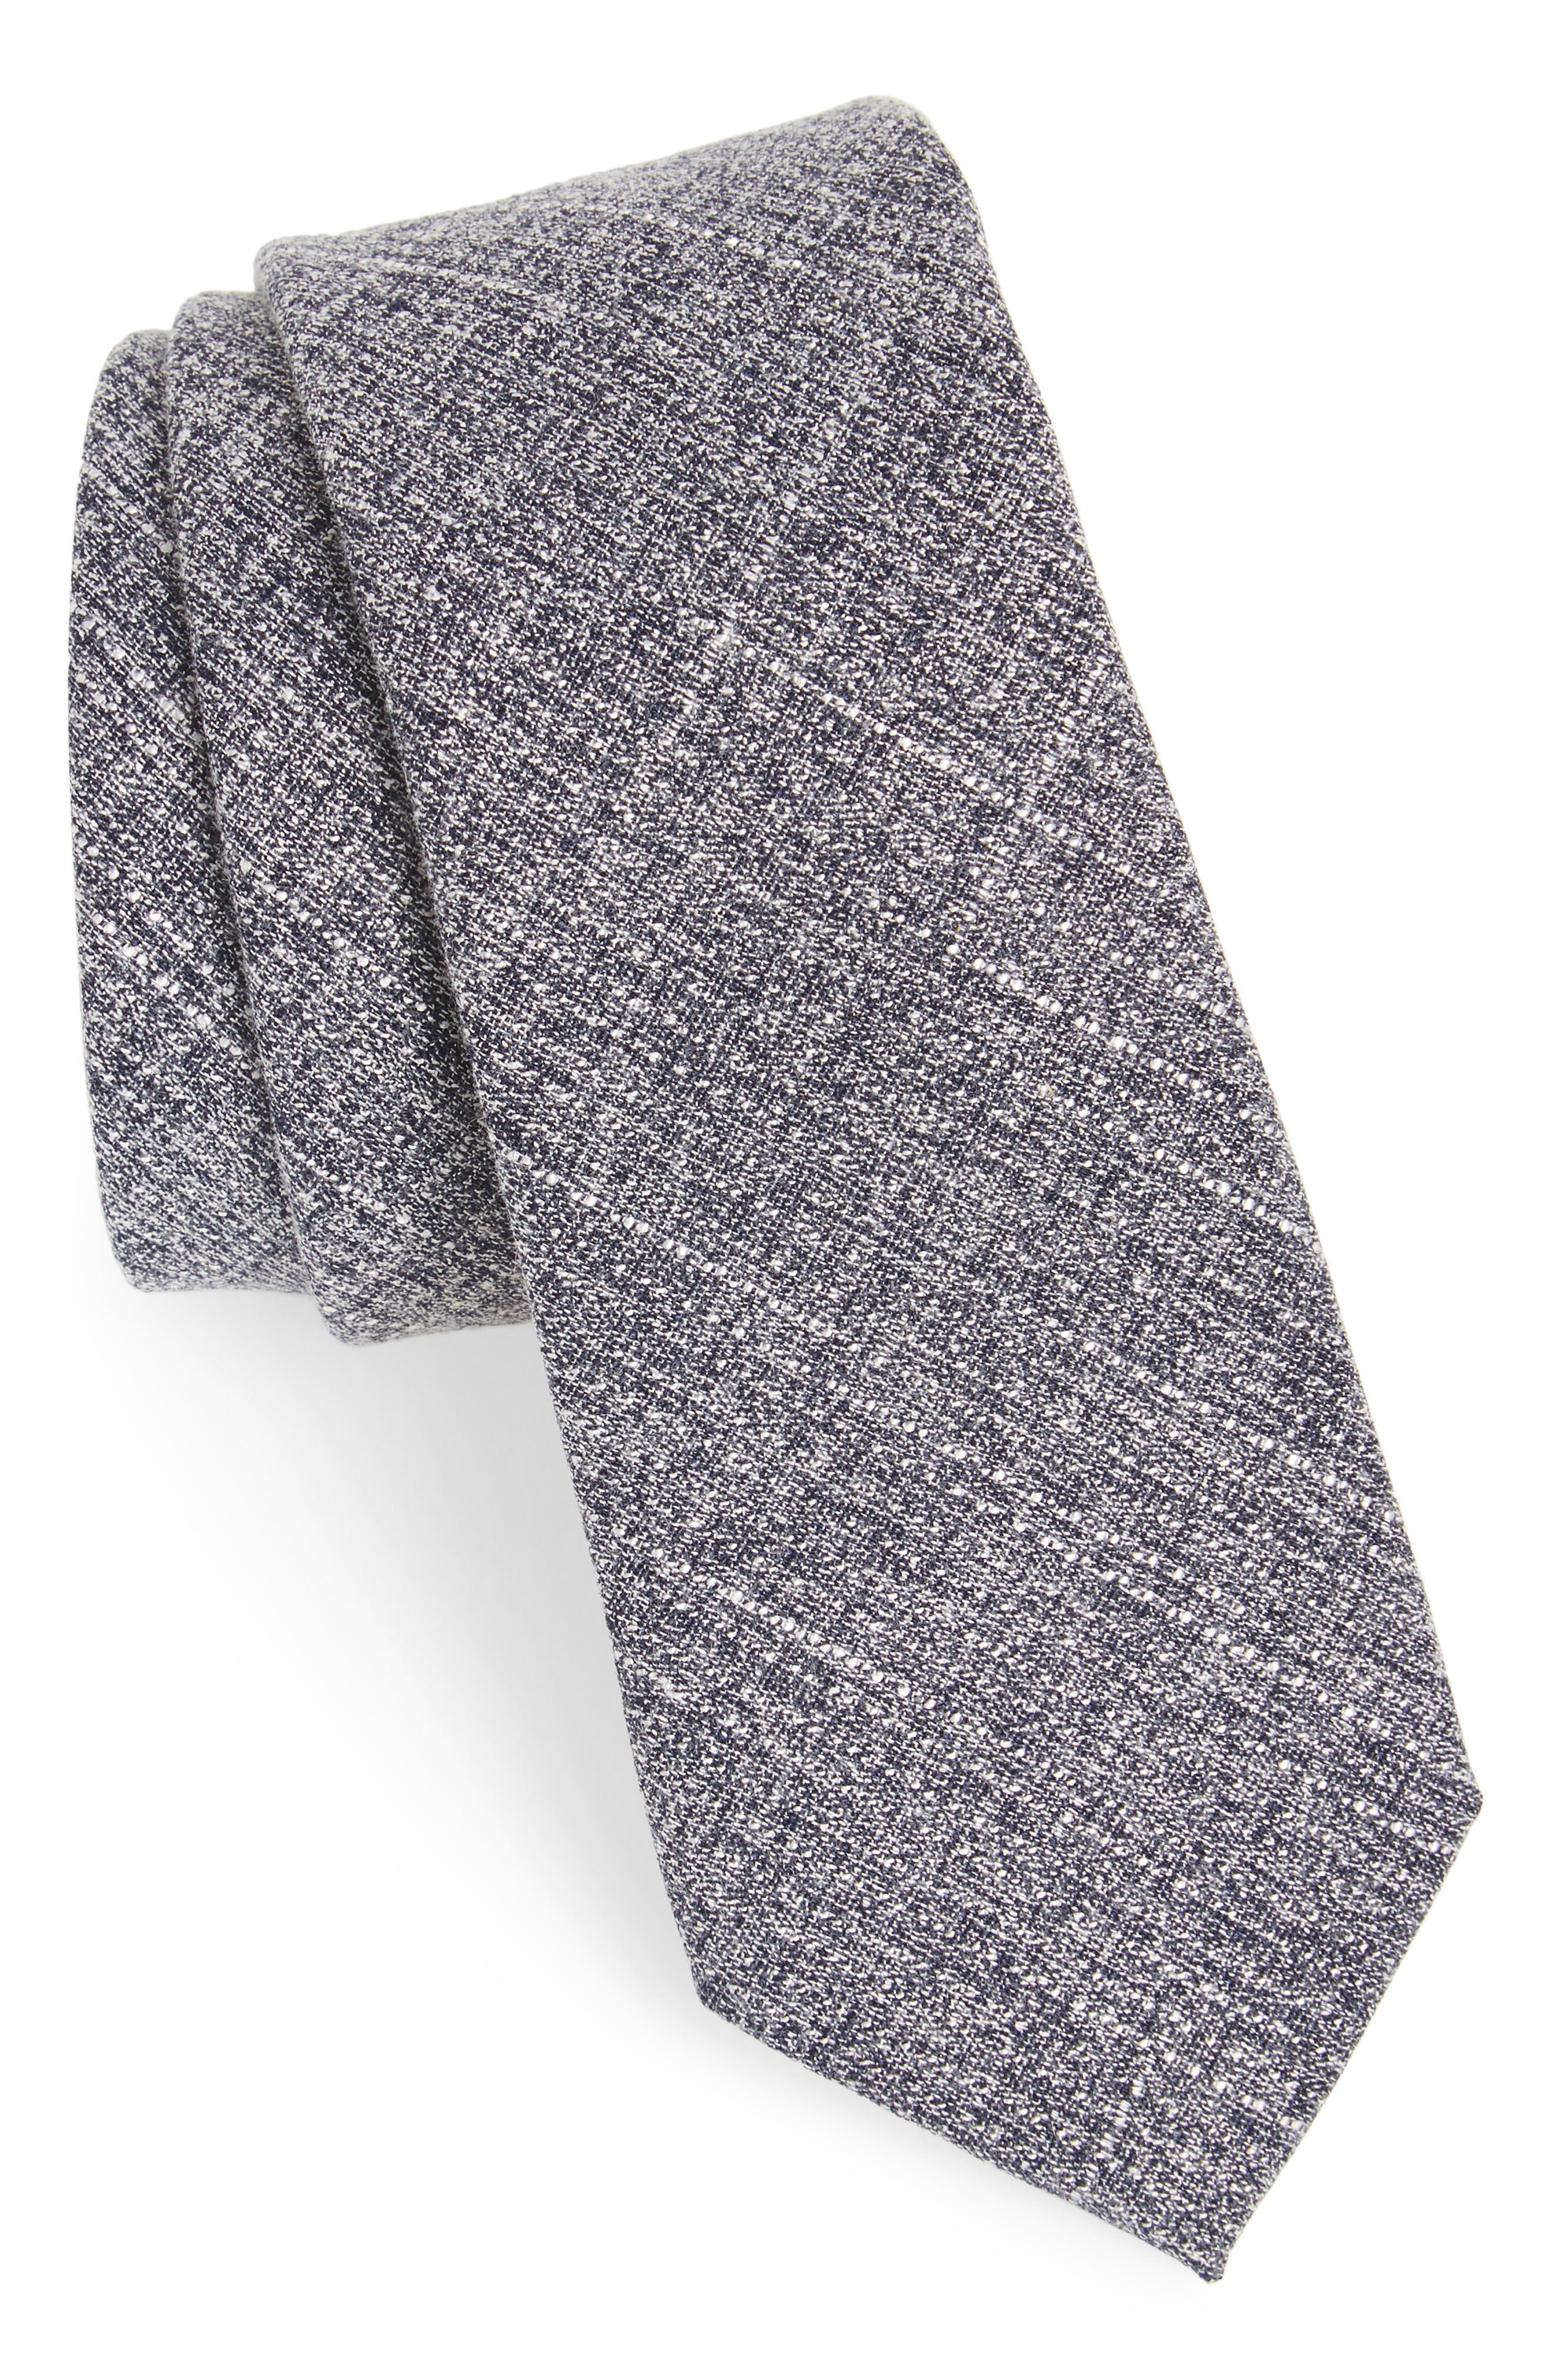 Main Image - Nordstrom Men's Shop Hudson Tie